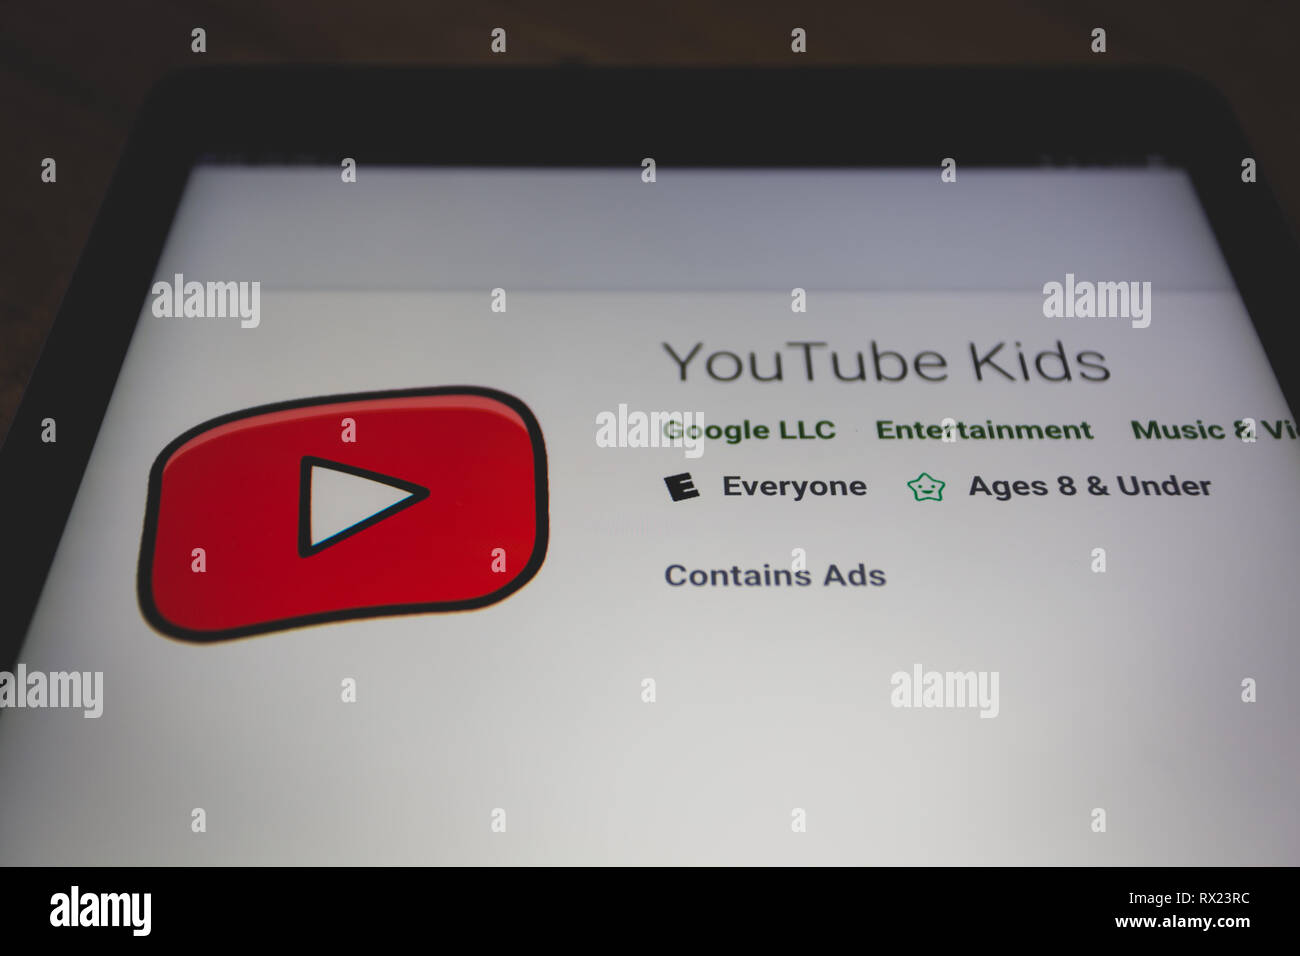 YouTube Kids app logo on Google Play store is shown on tablet screen - Stock Image